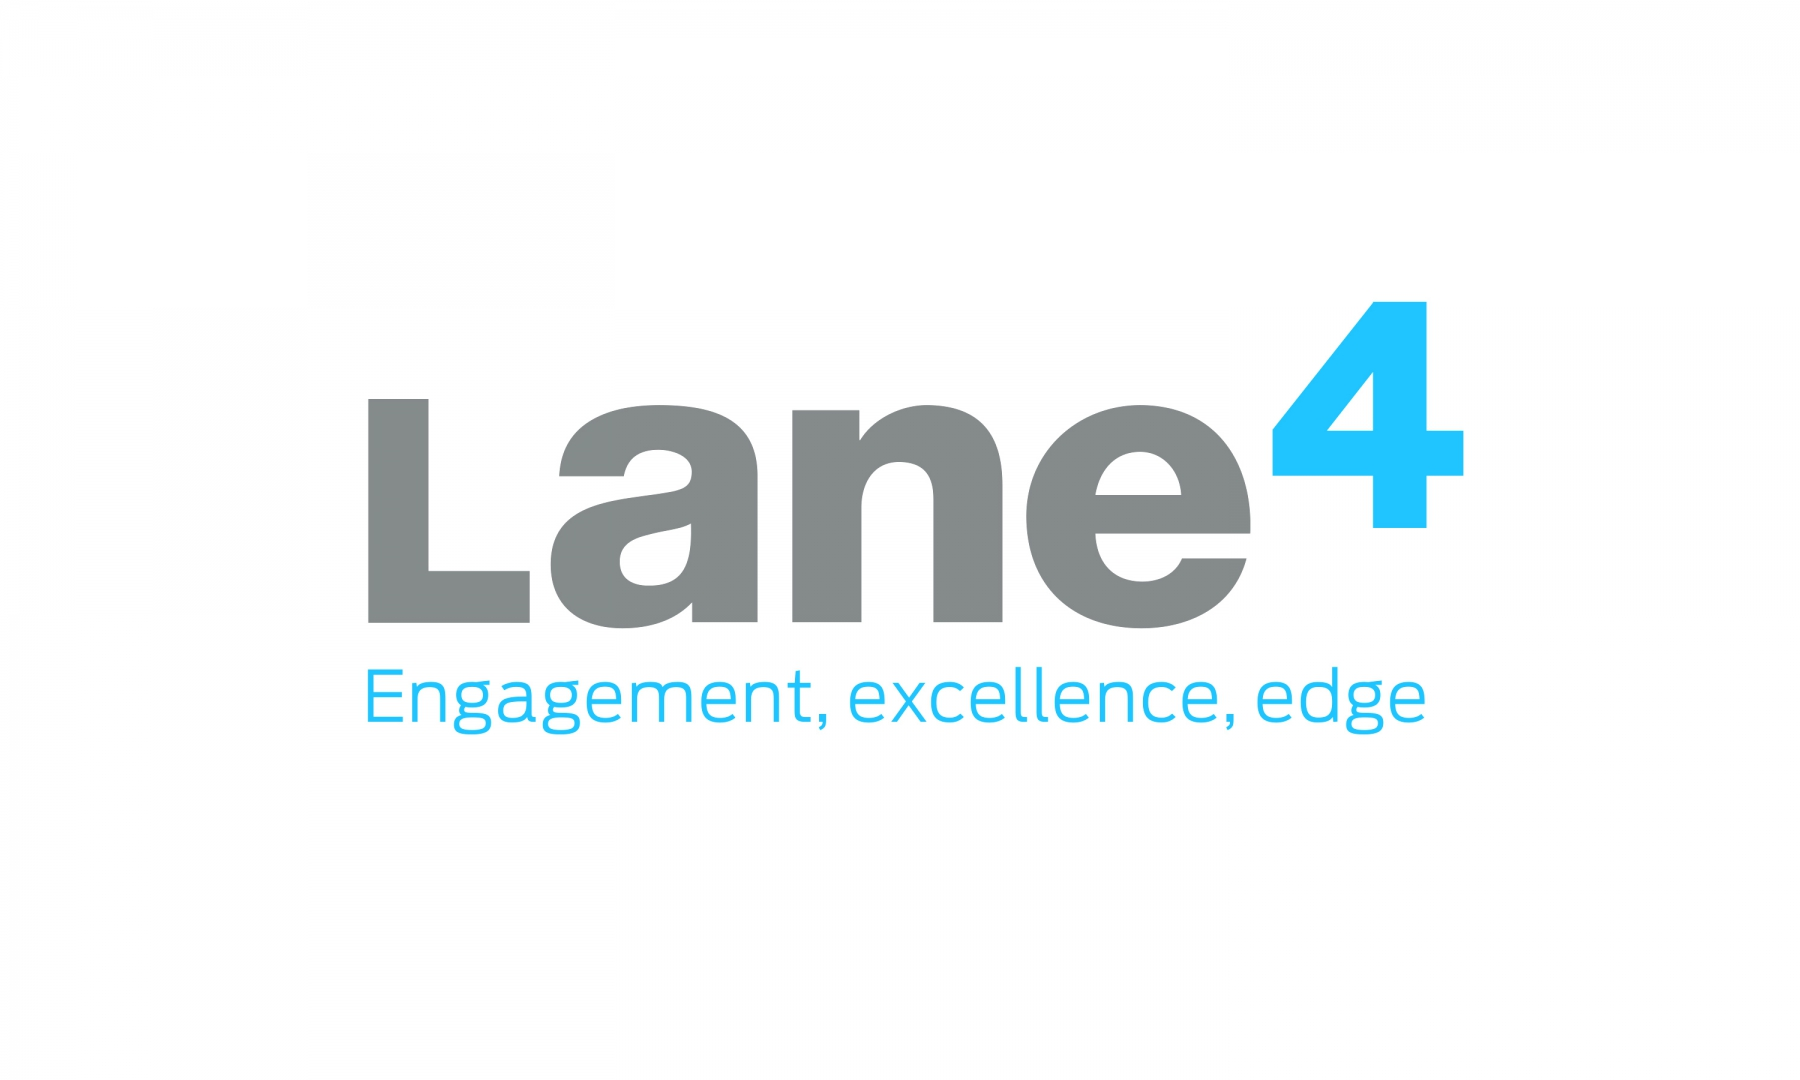 Lane4-brand-identity-brand-mark-by-Neon-1800x1080.jpg